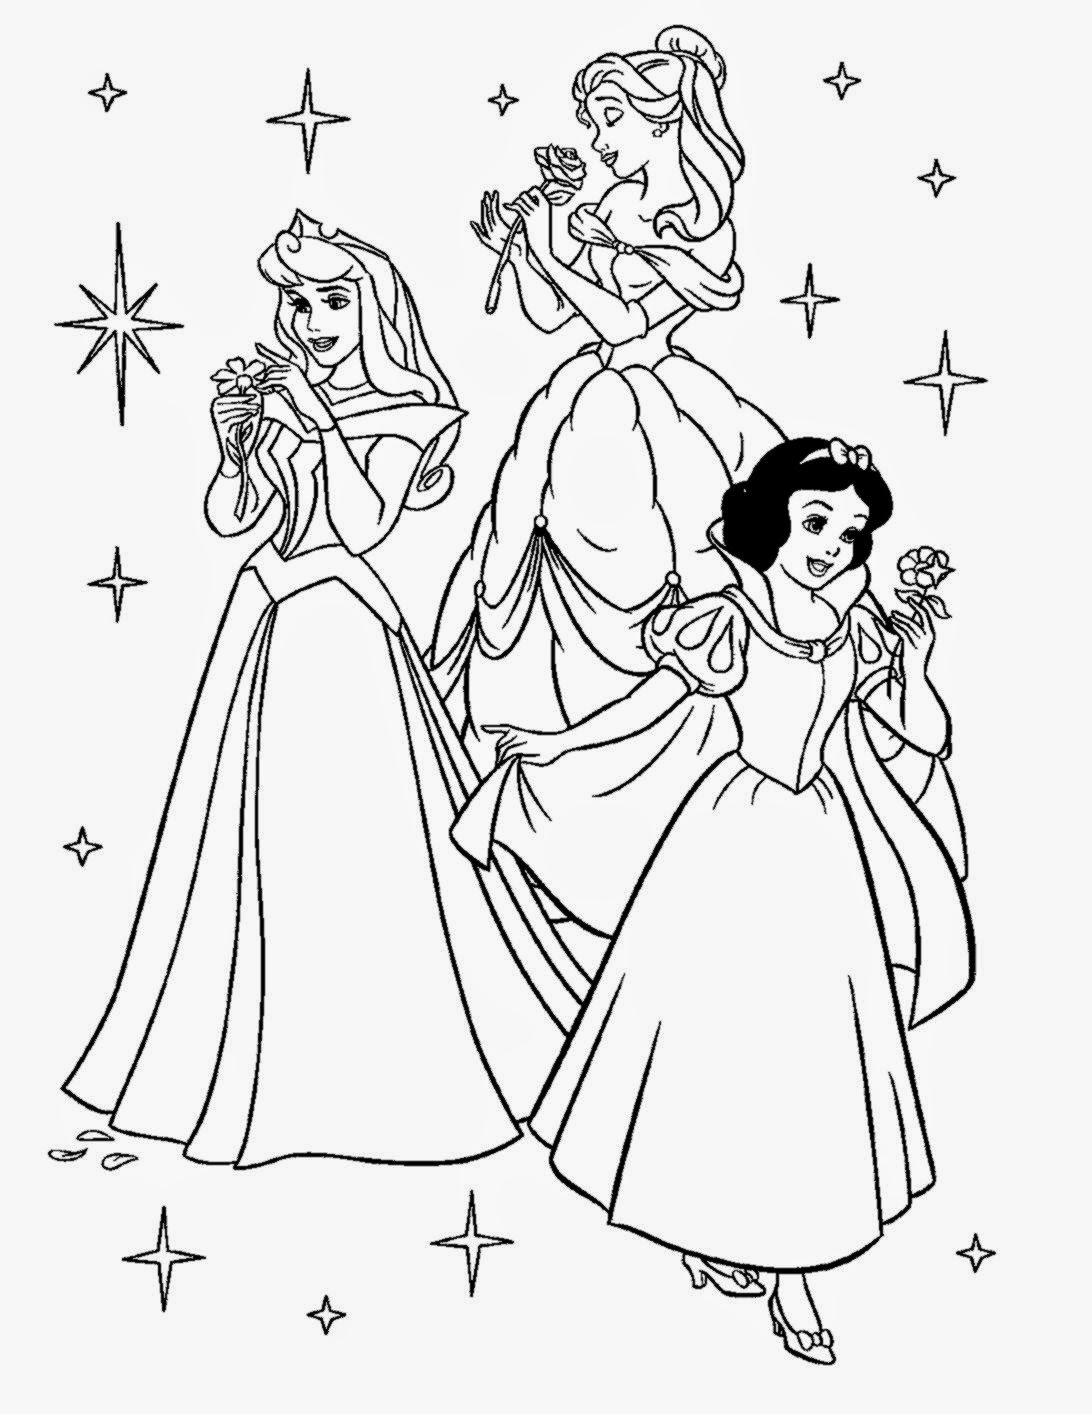 Print Free Coloring Pages Disney in 2020 | Disney coloring sheets ... | 1414x1092